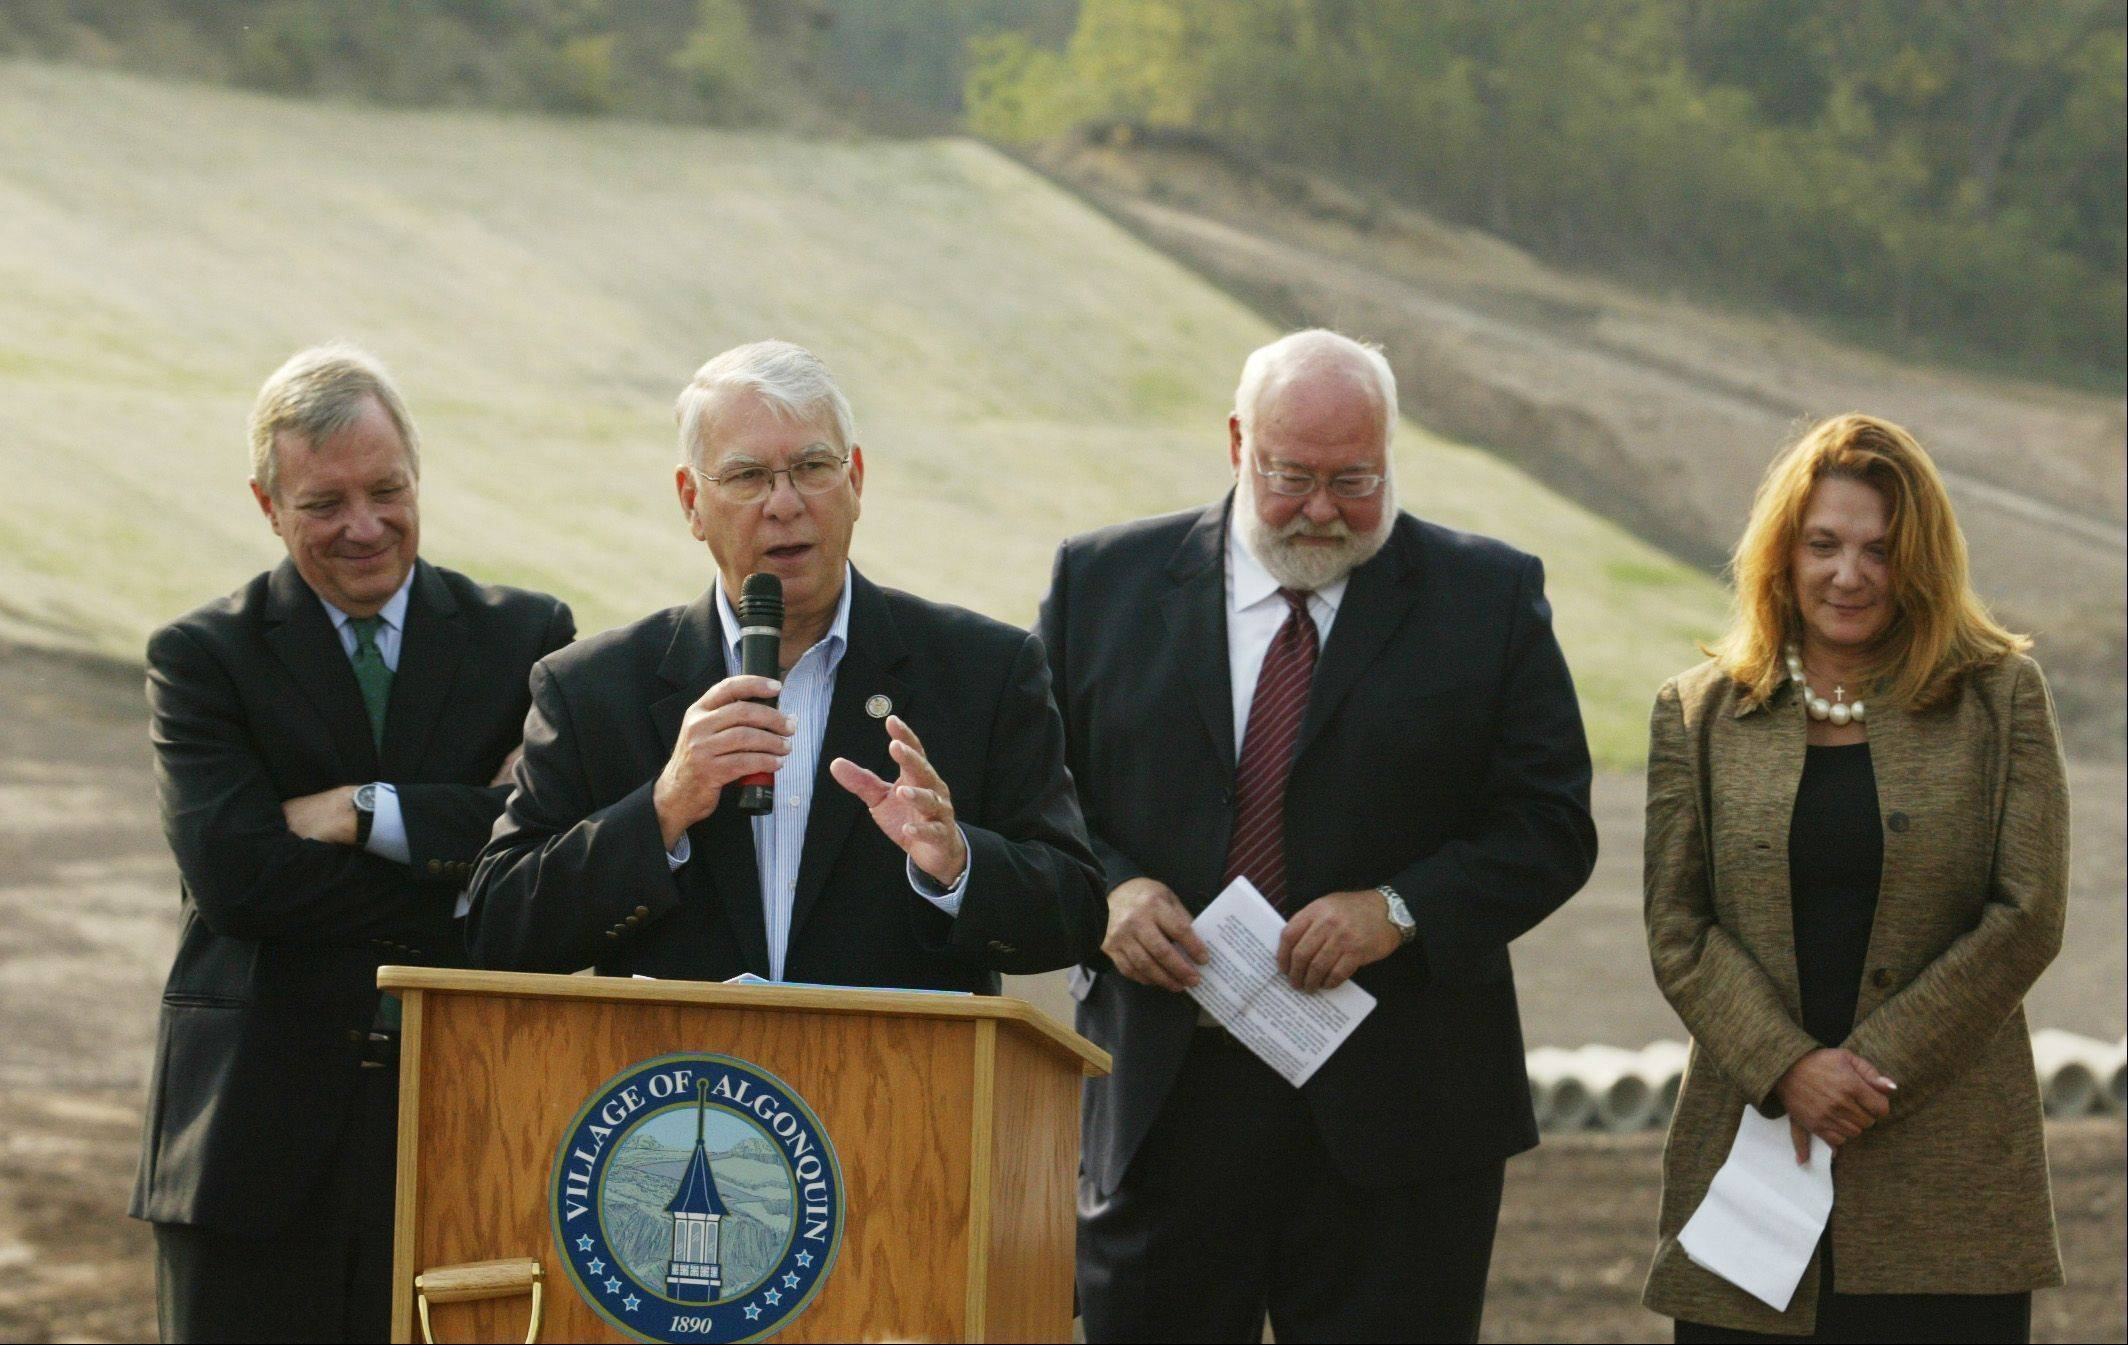 Congressman Don Manzullo addresses the crowd Monday during the official groundbreaking ceremony for the western bypass in Algonquin. Behind him from left are Sen. Dick Durbin, Algonquin Village President John Schmitt, and State Sen. Pam Althoff.